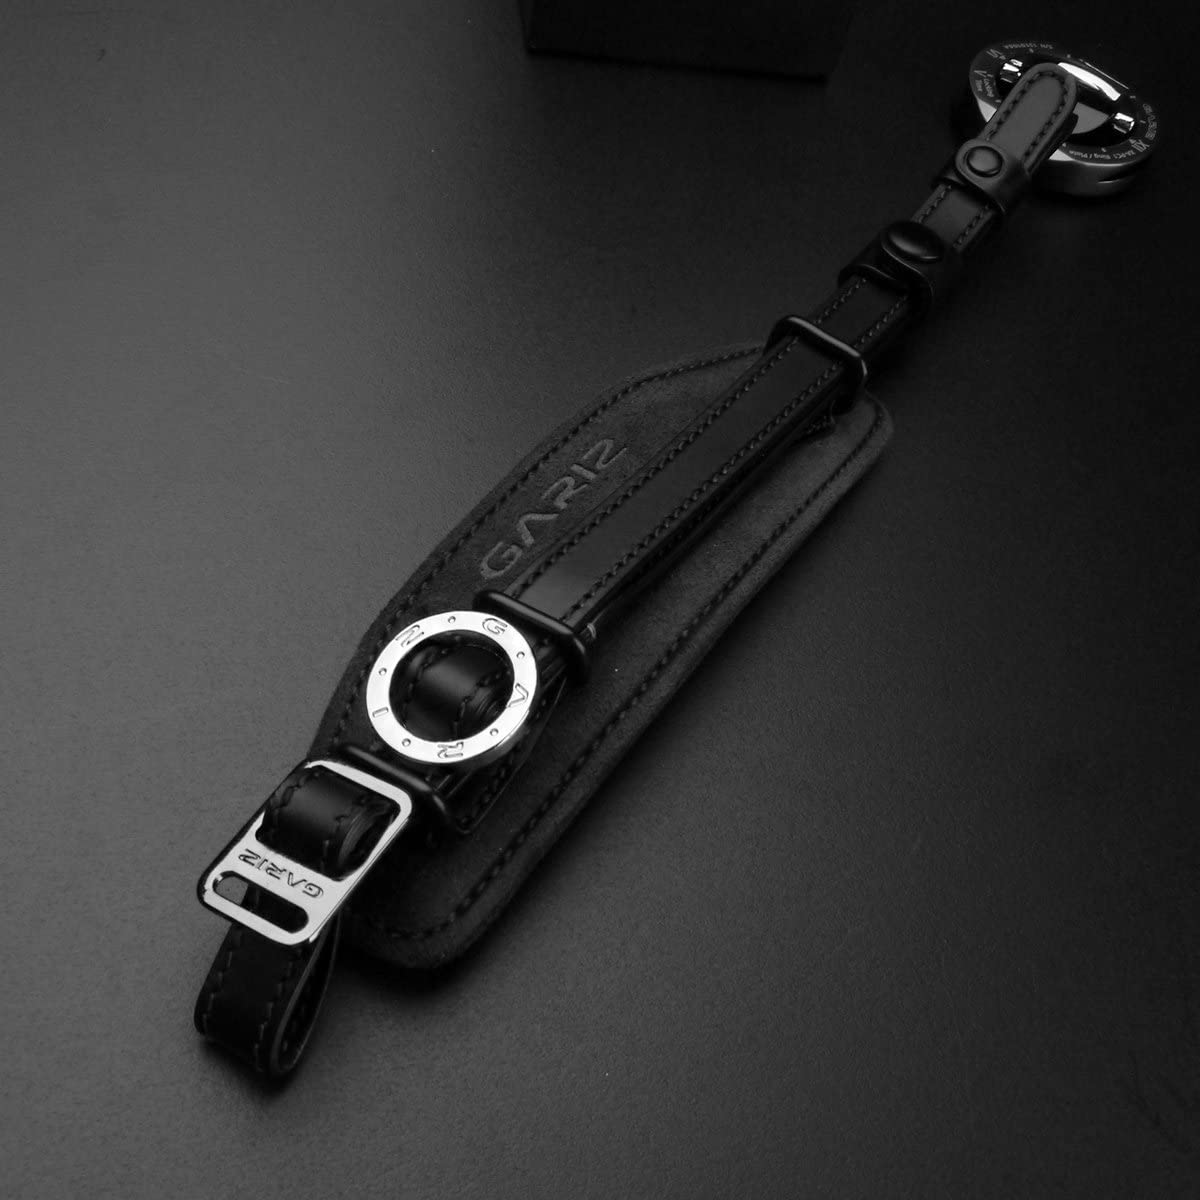 Gariz Genuine Leather AT-HG2//CG1 Alcantara Hand Strap Grip for DSLR with Plate Black